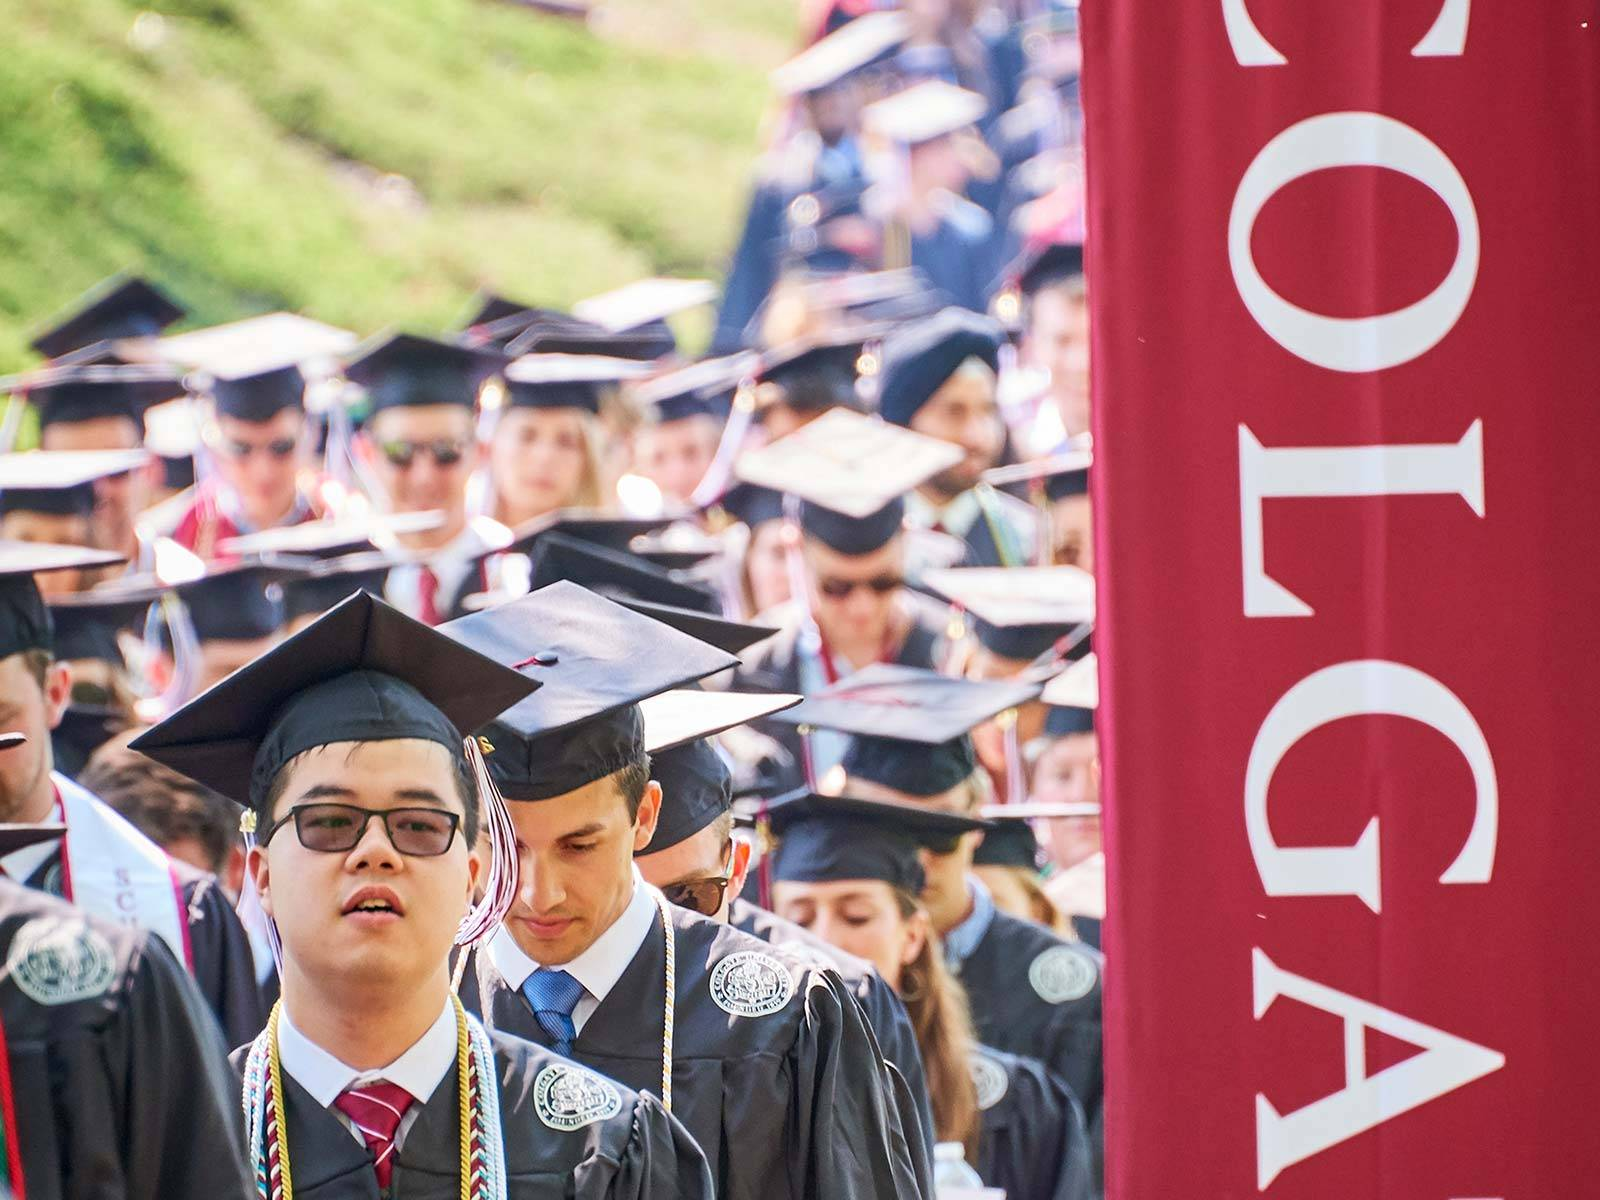 Students process into commencement 2019 past a Colgate Banner